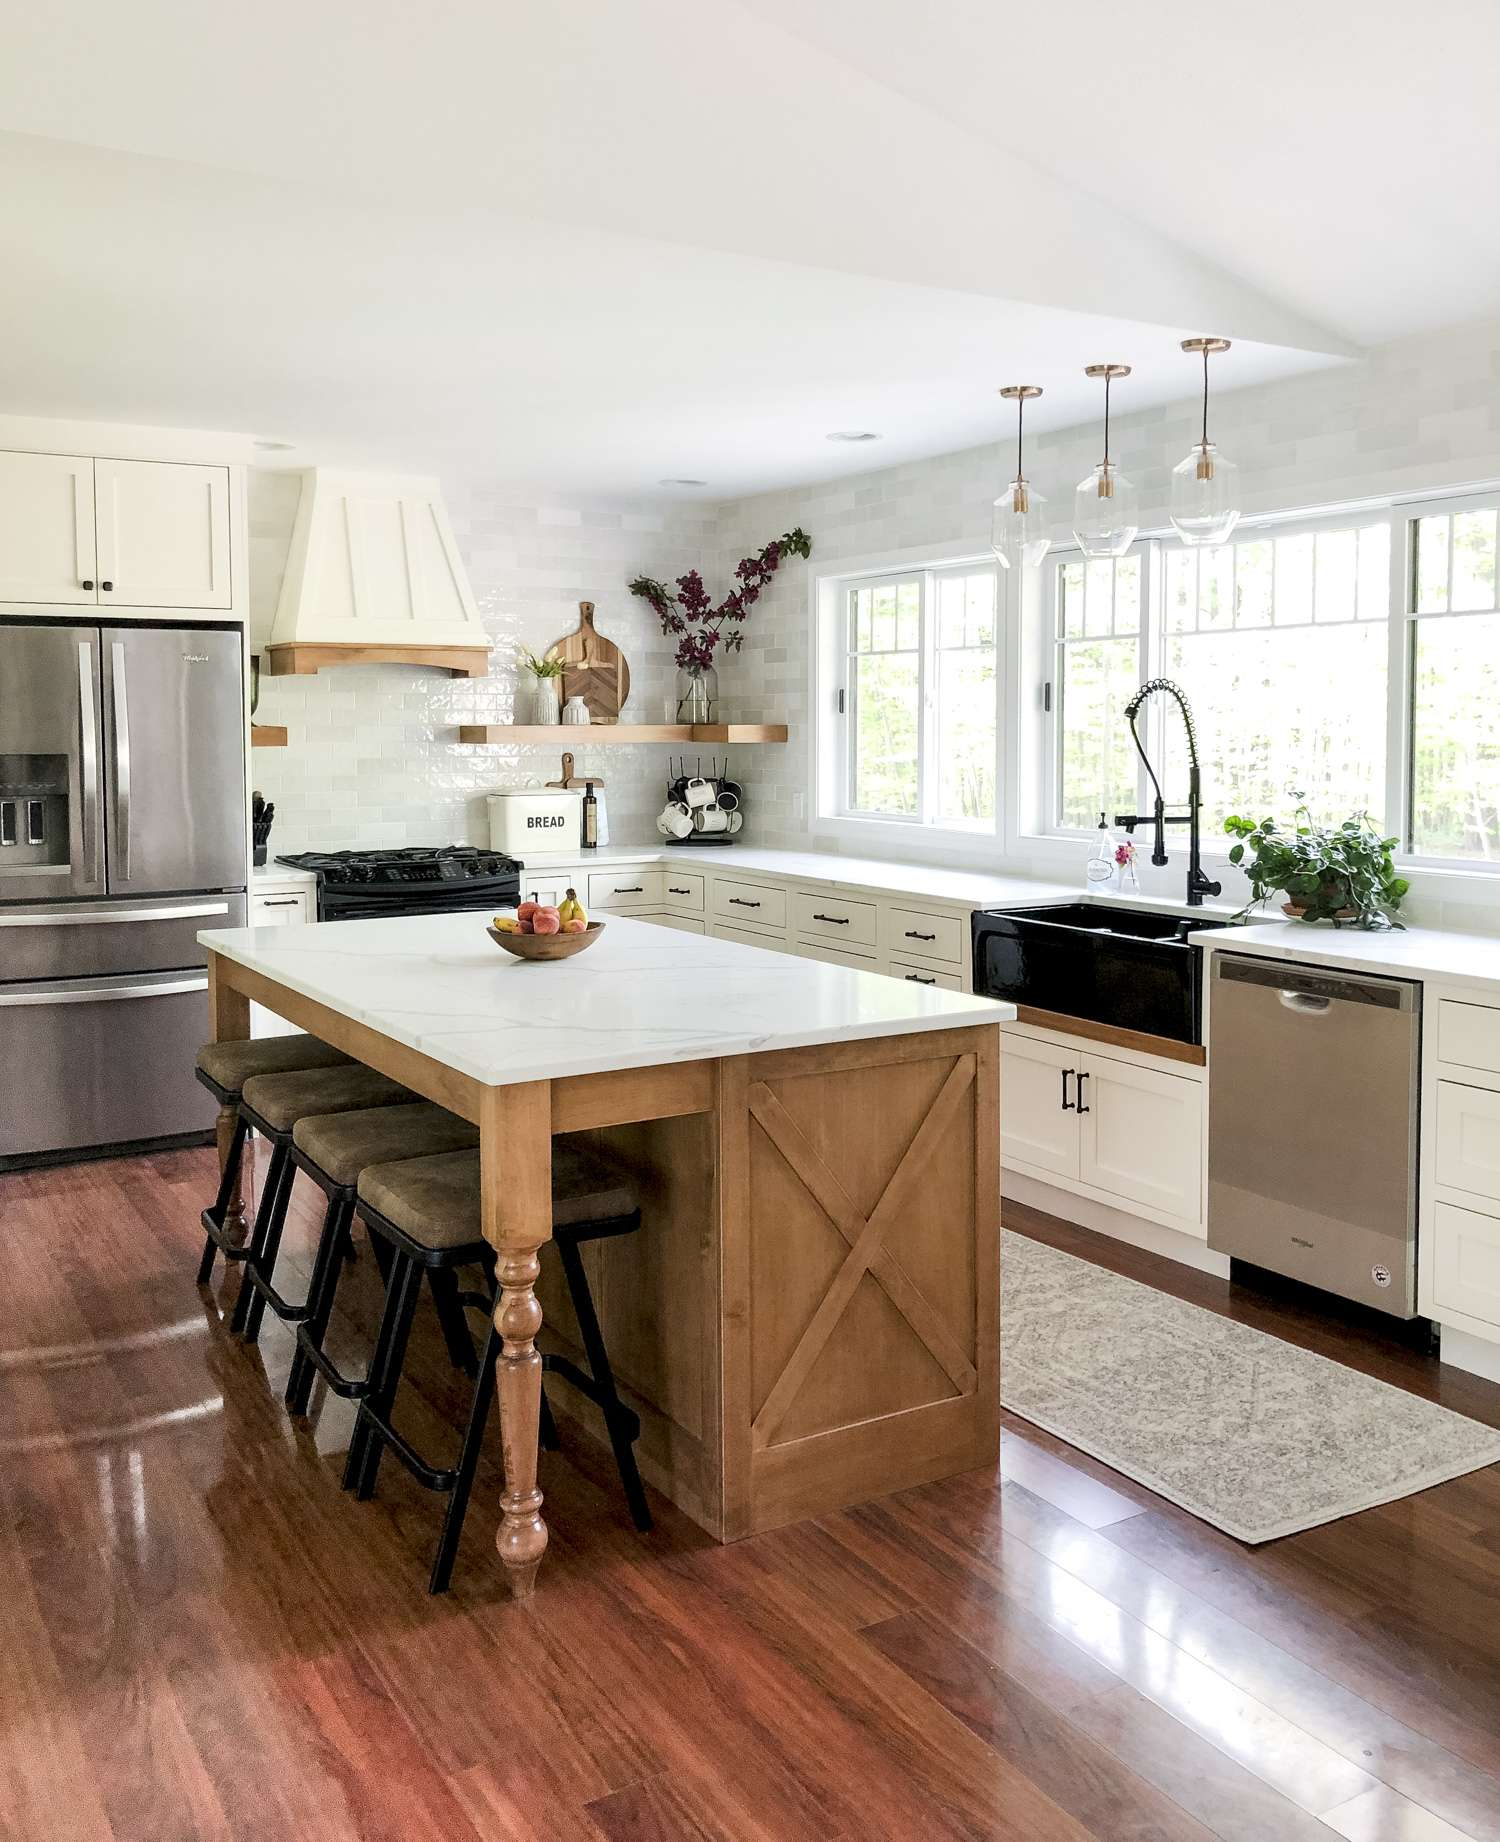 Designing a Modern Farmhouse Kitchen with a Black Farmhouse ...